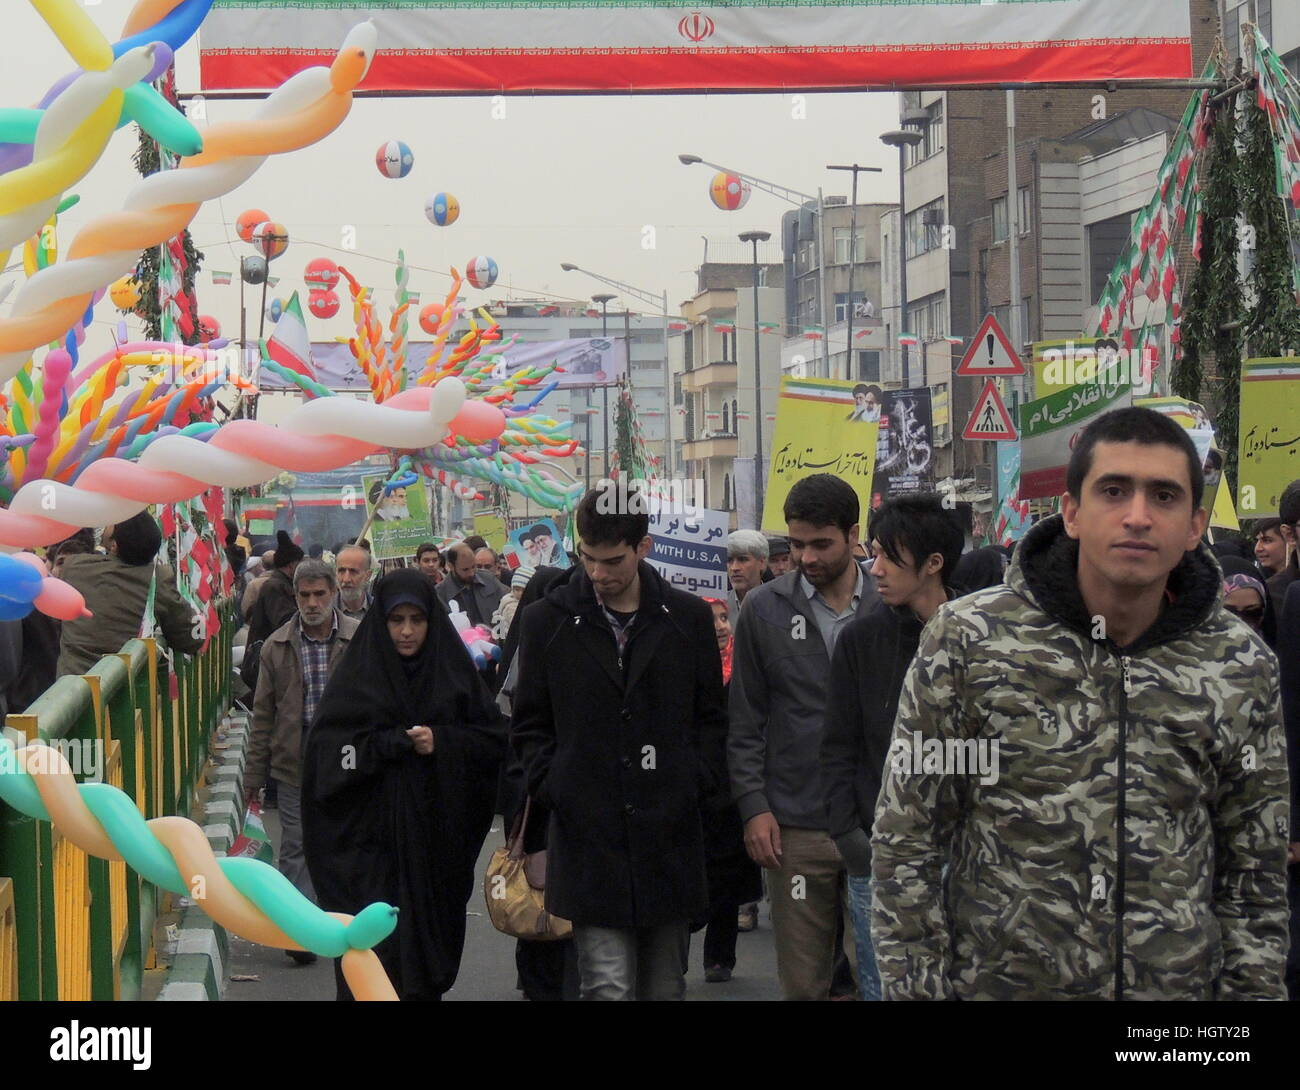 Iranian people march in Tehran streets at Islamic Revolution anniversary rally, national day of Iran - street level - Stock Image